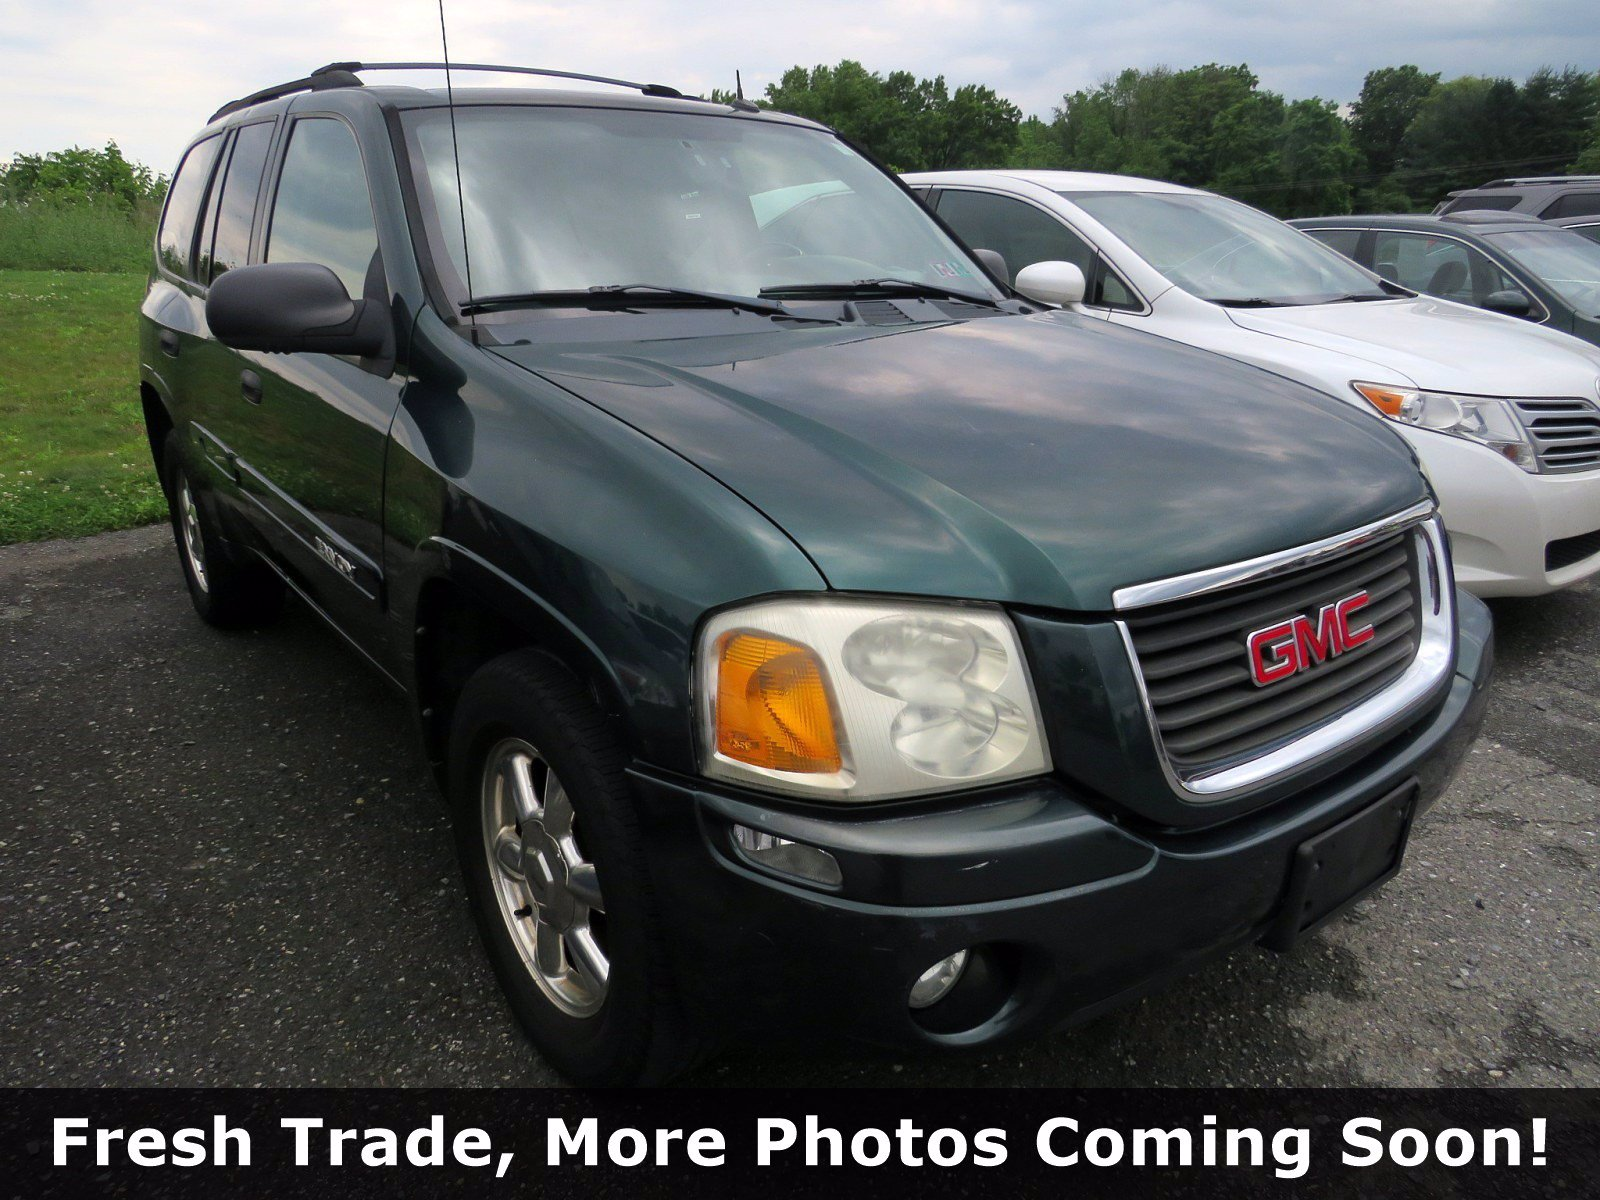 Pre-Owned 2005 GMC Envoy SLE Sport Utility 4WD